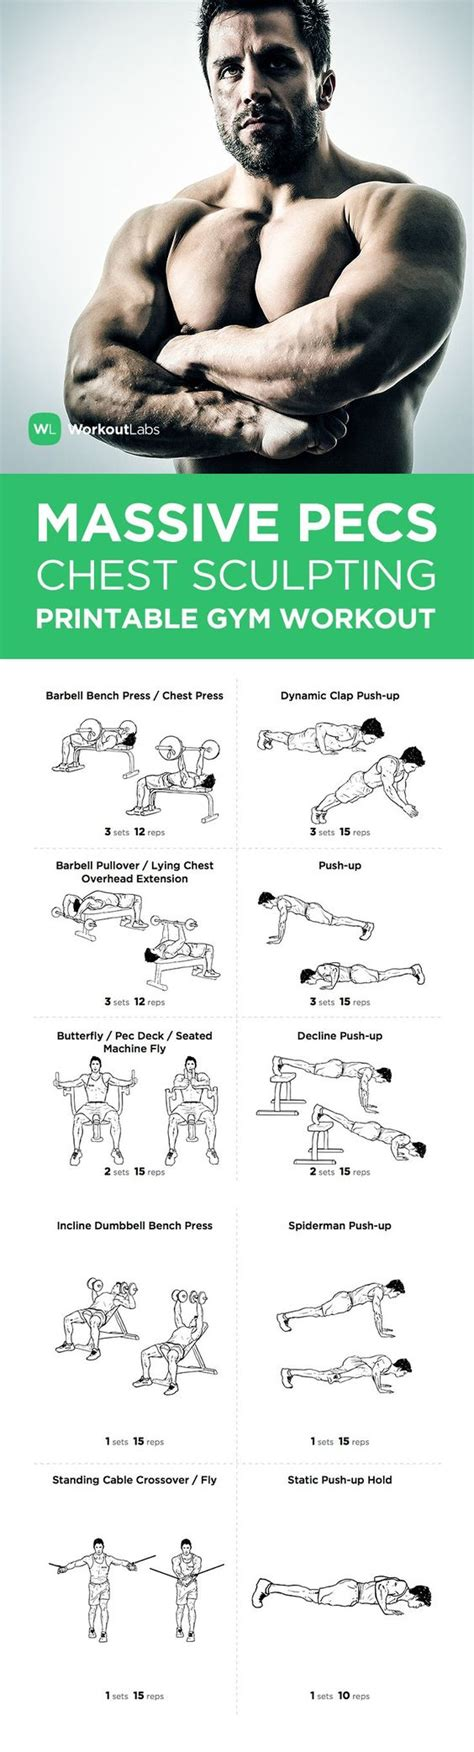 10 workouts for by day